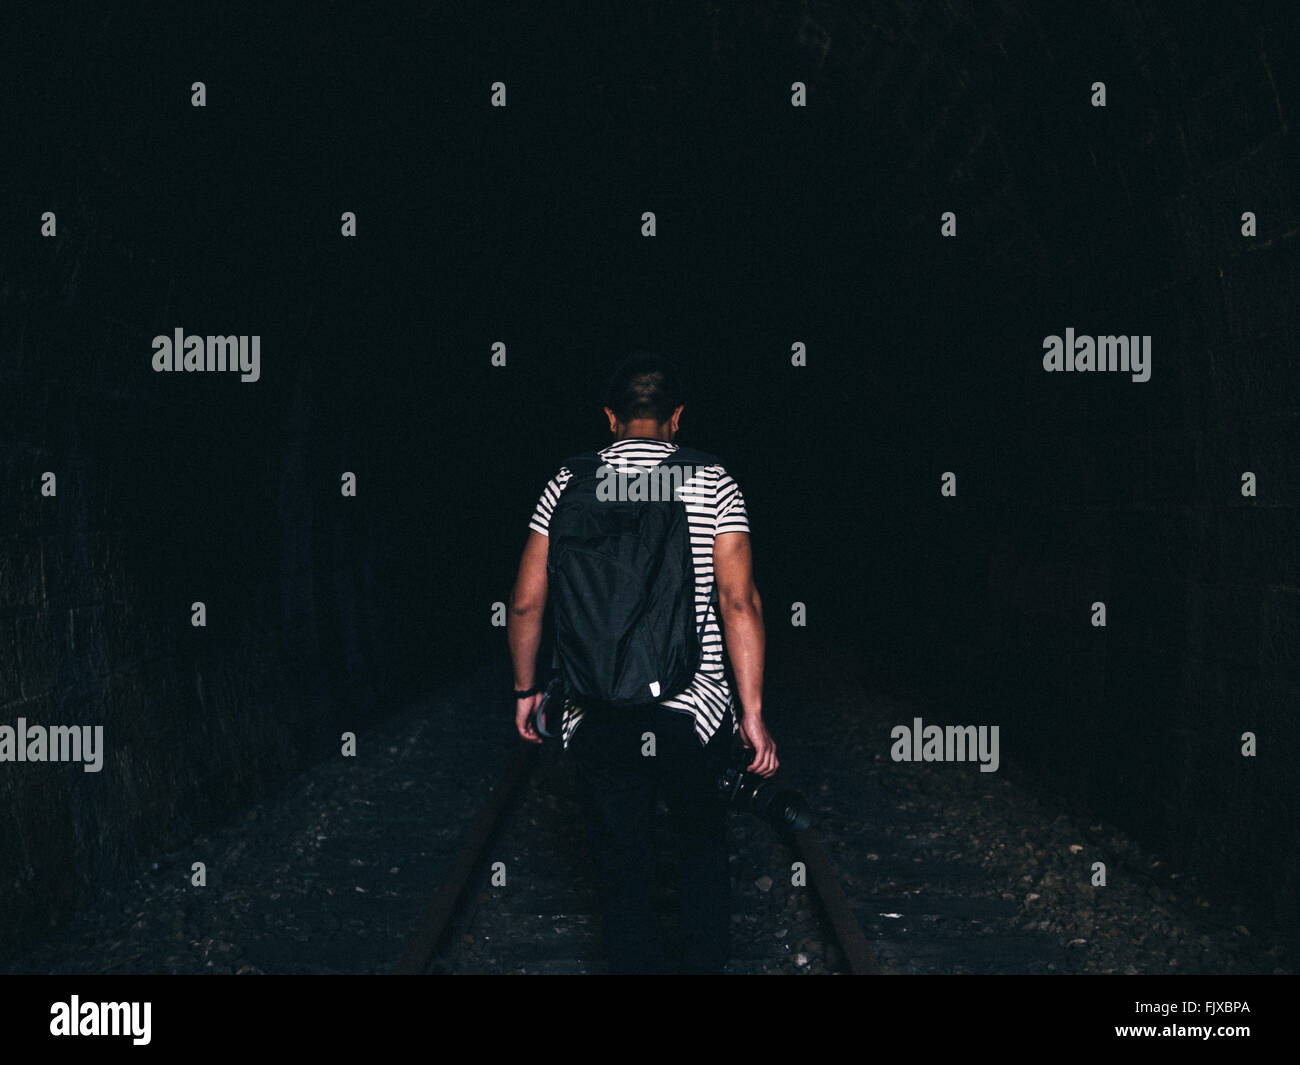 Rear View Of Man Walking On Railroad Track At Night - Stock Image